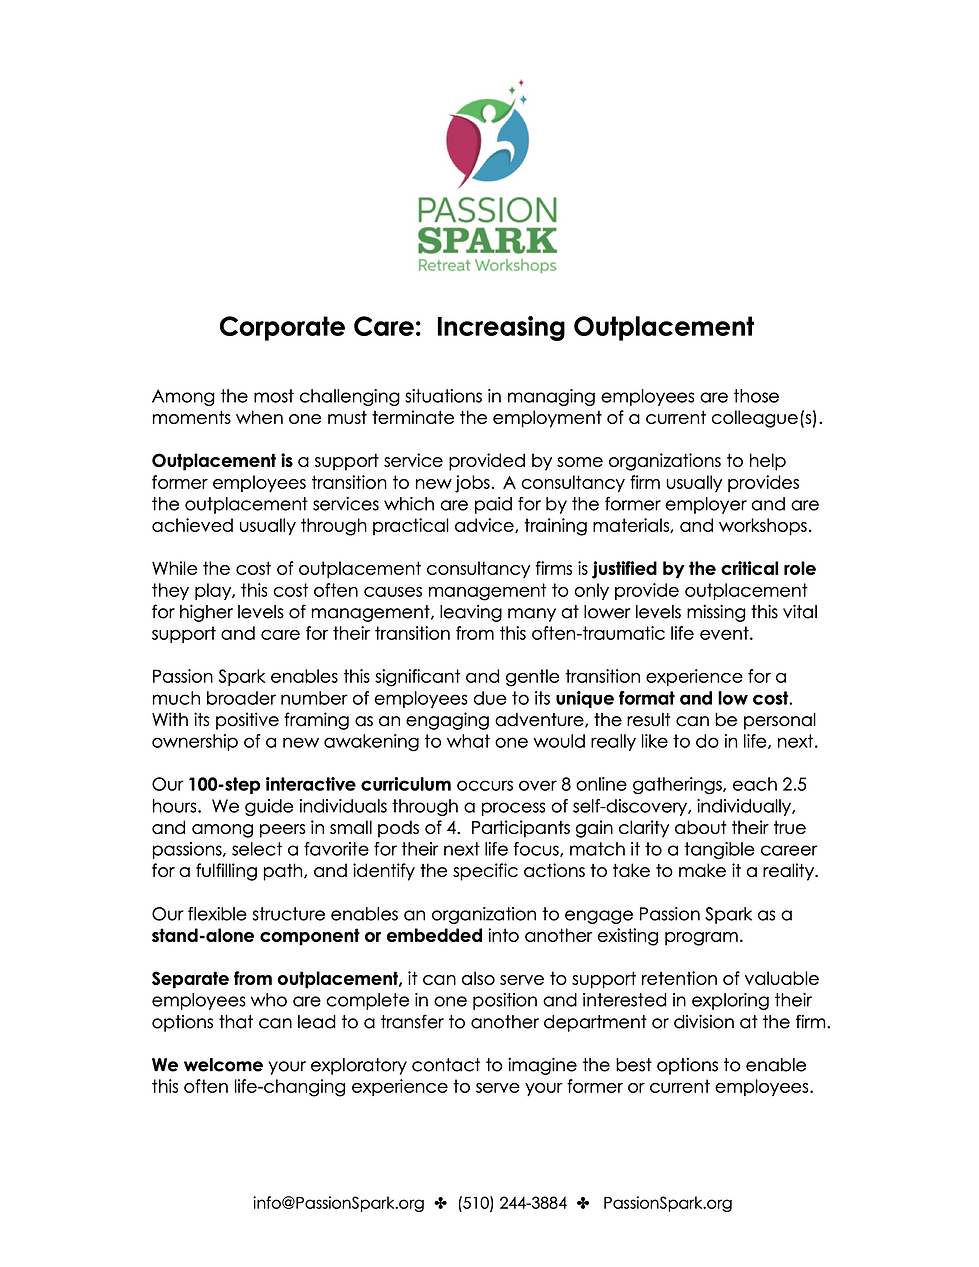 Corporate Care in the form of Outplaceme